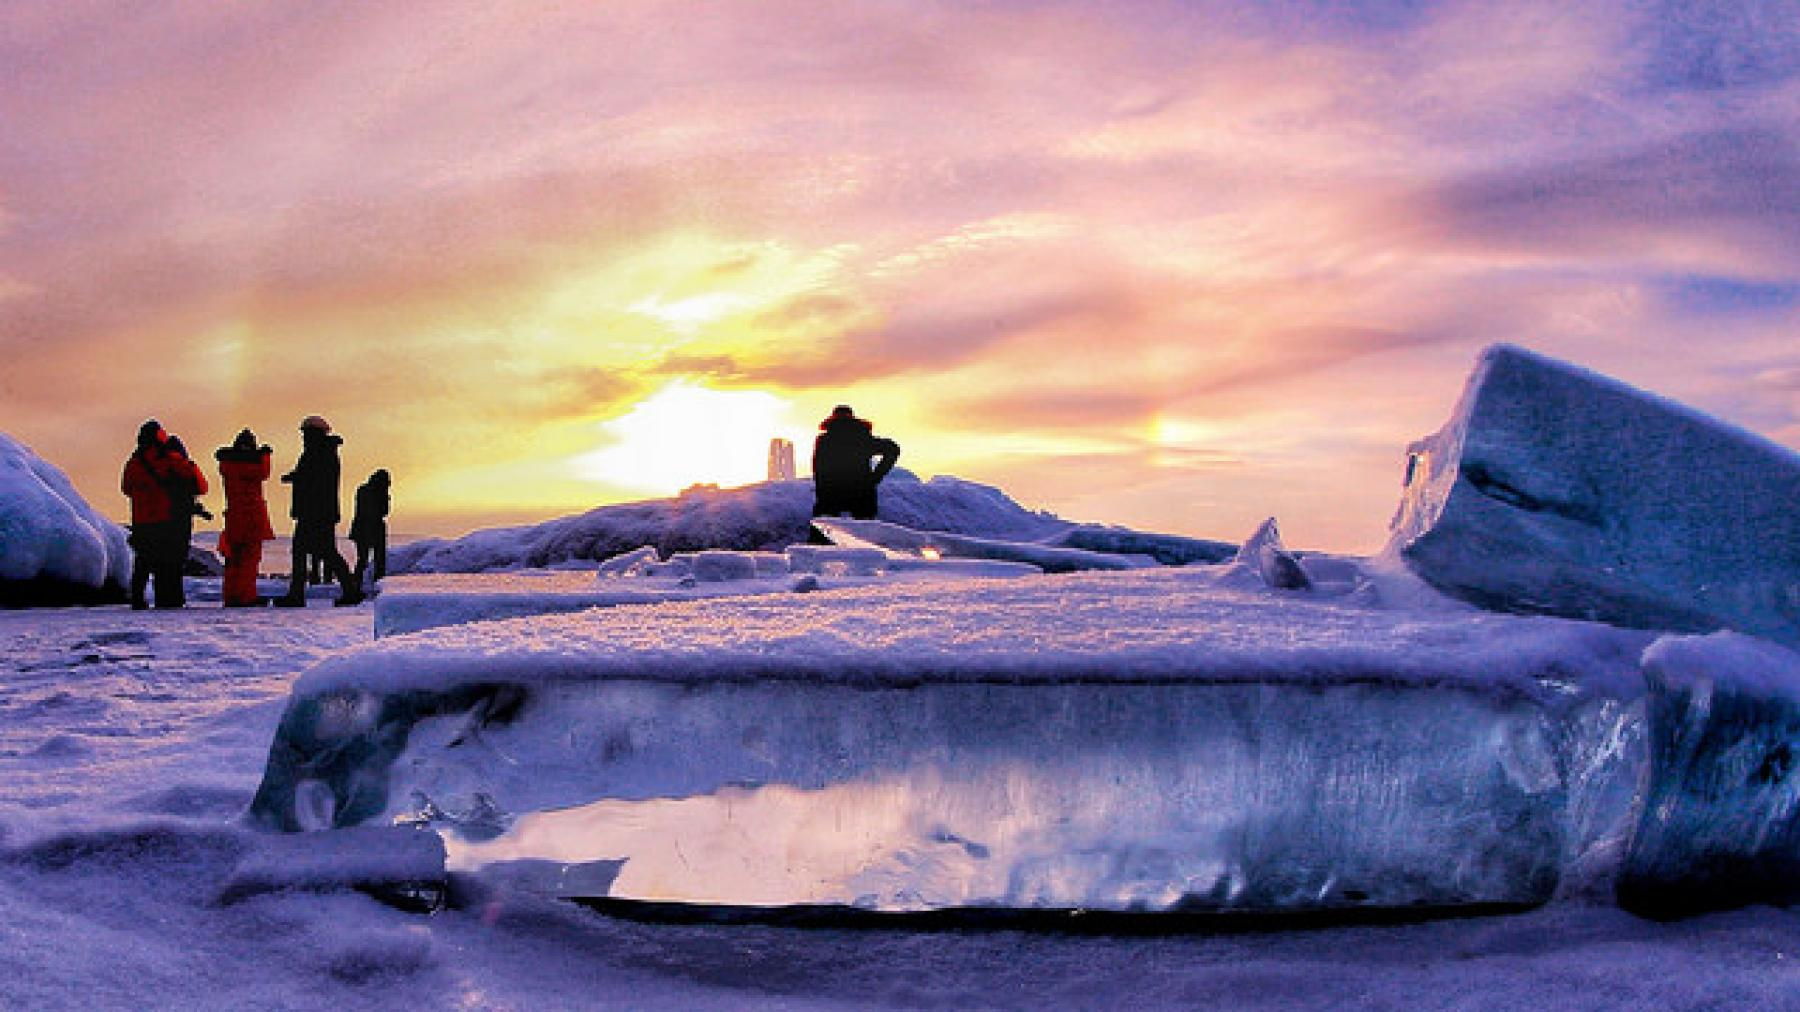 Experience the frozen Lake Baikal - the deepest and oldest lake in the world starting at Irkutsk, Russia